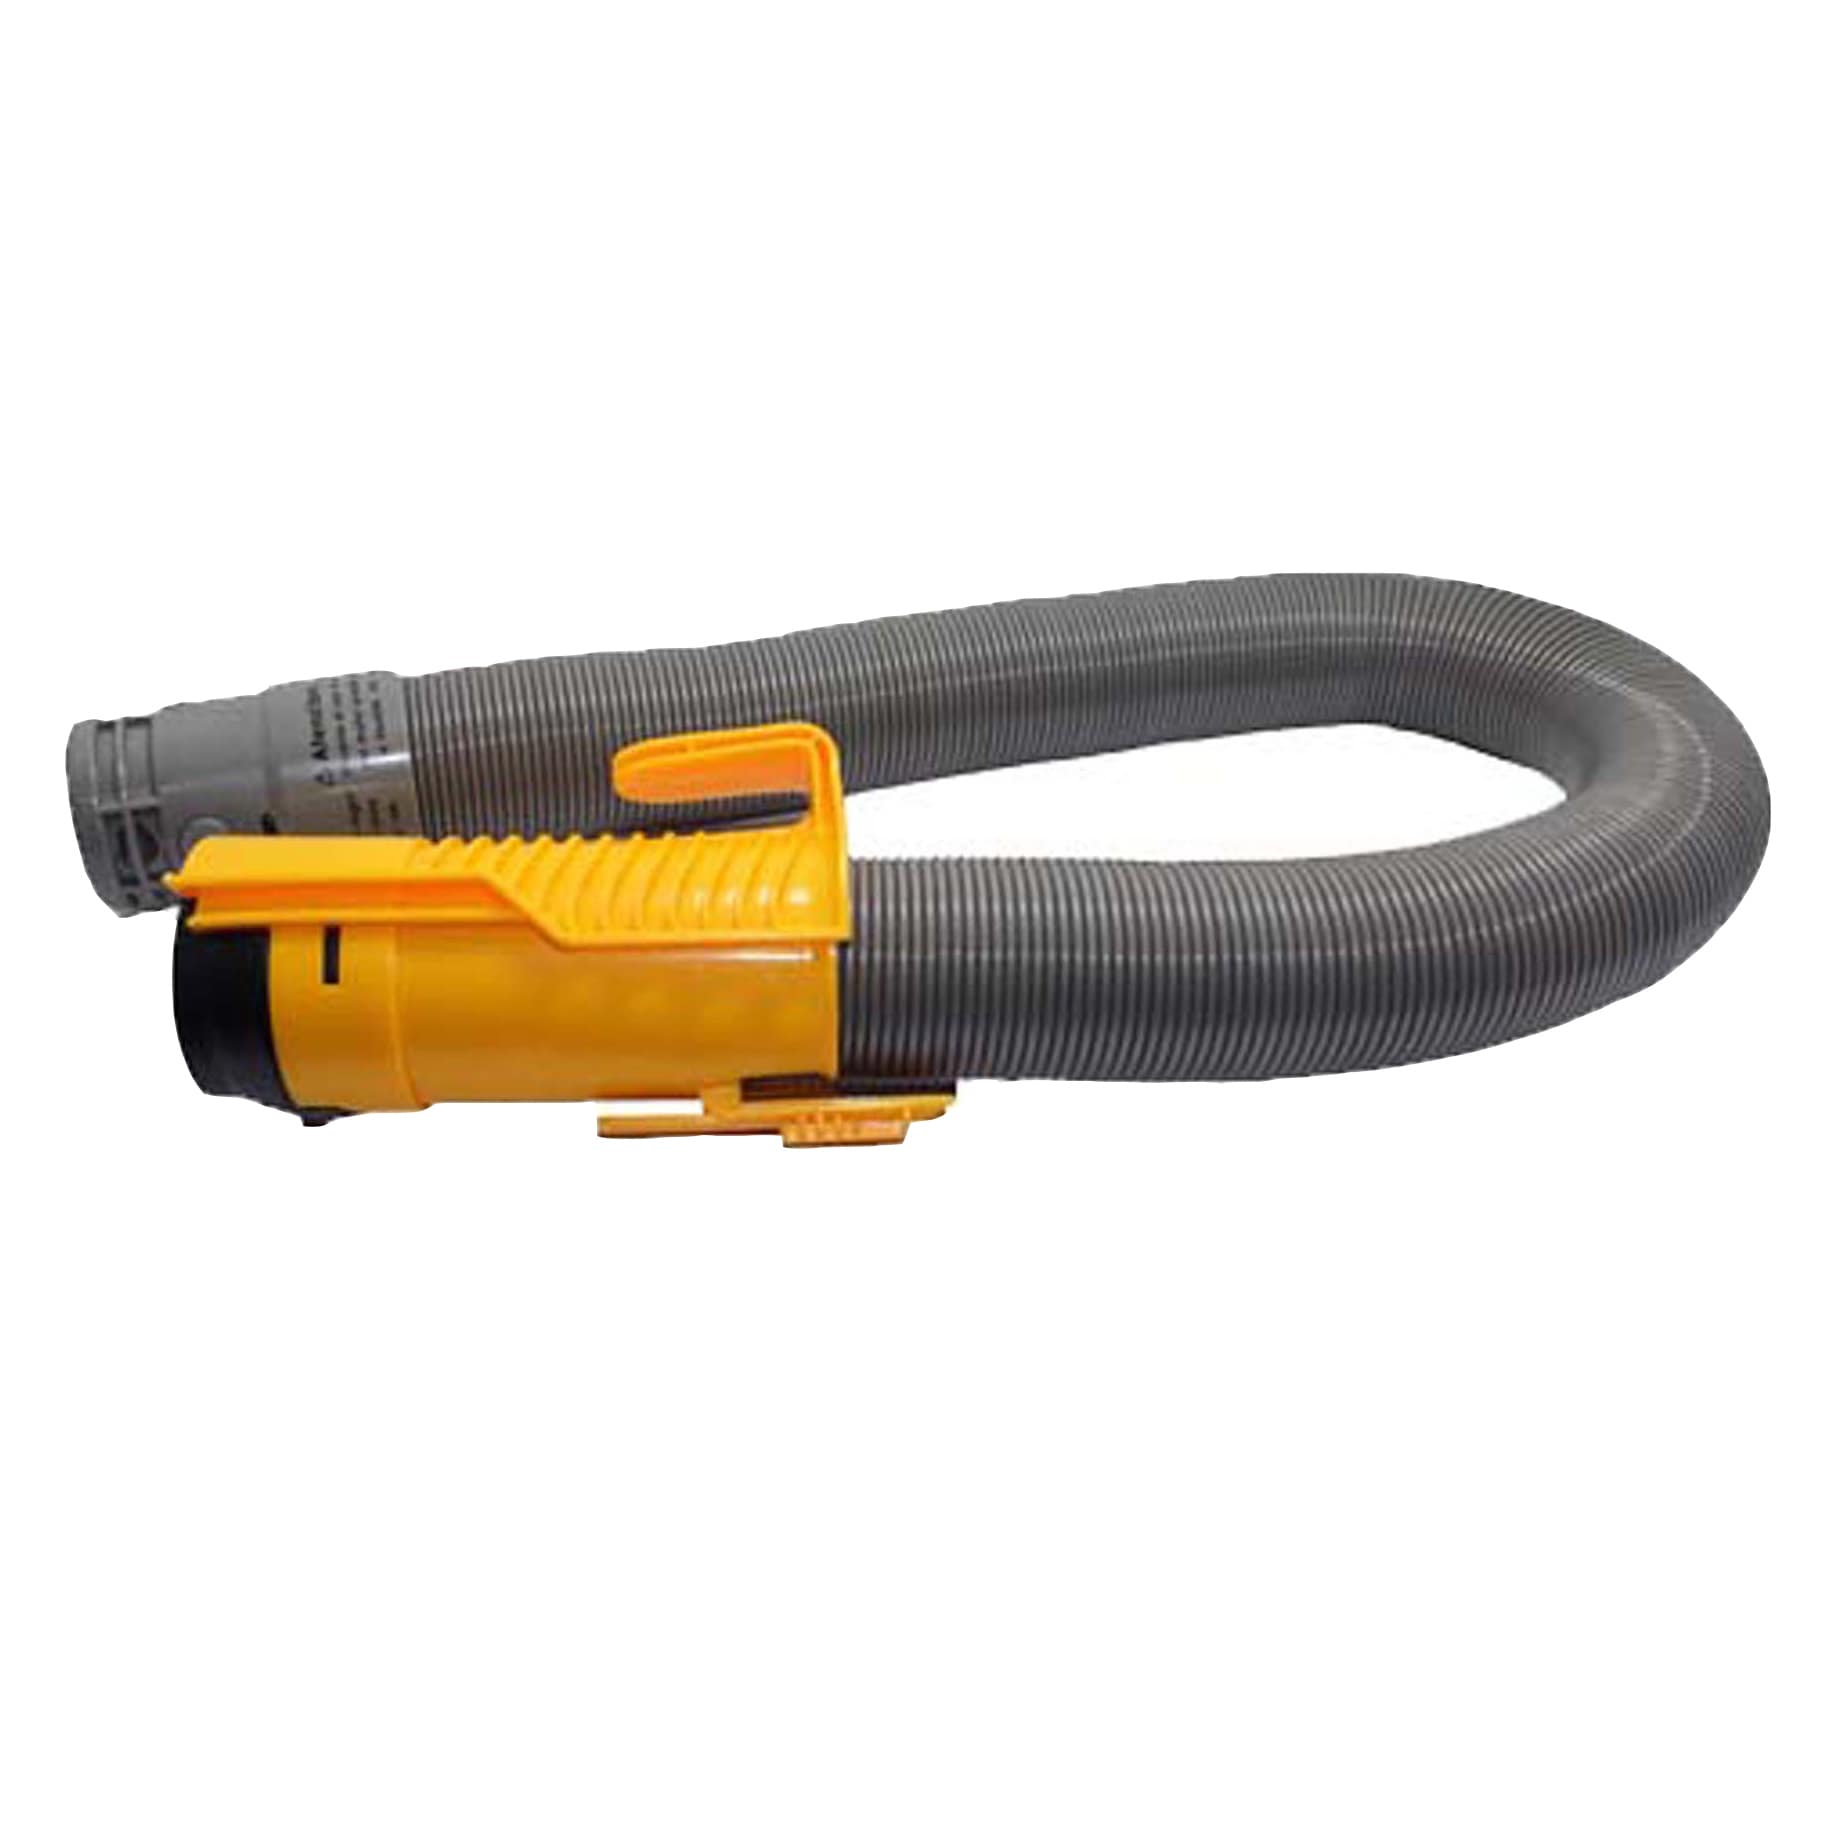 Crucial Vacuum Dyson DC07 Silver/ Yellow All Floors Hose ...